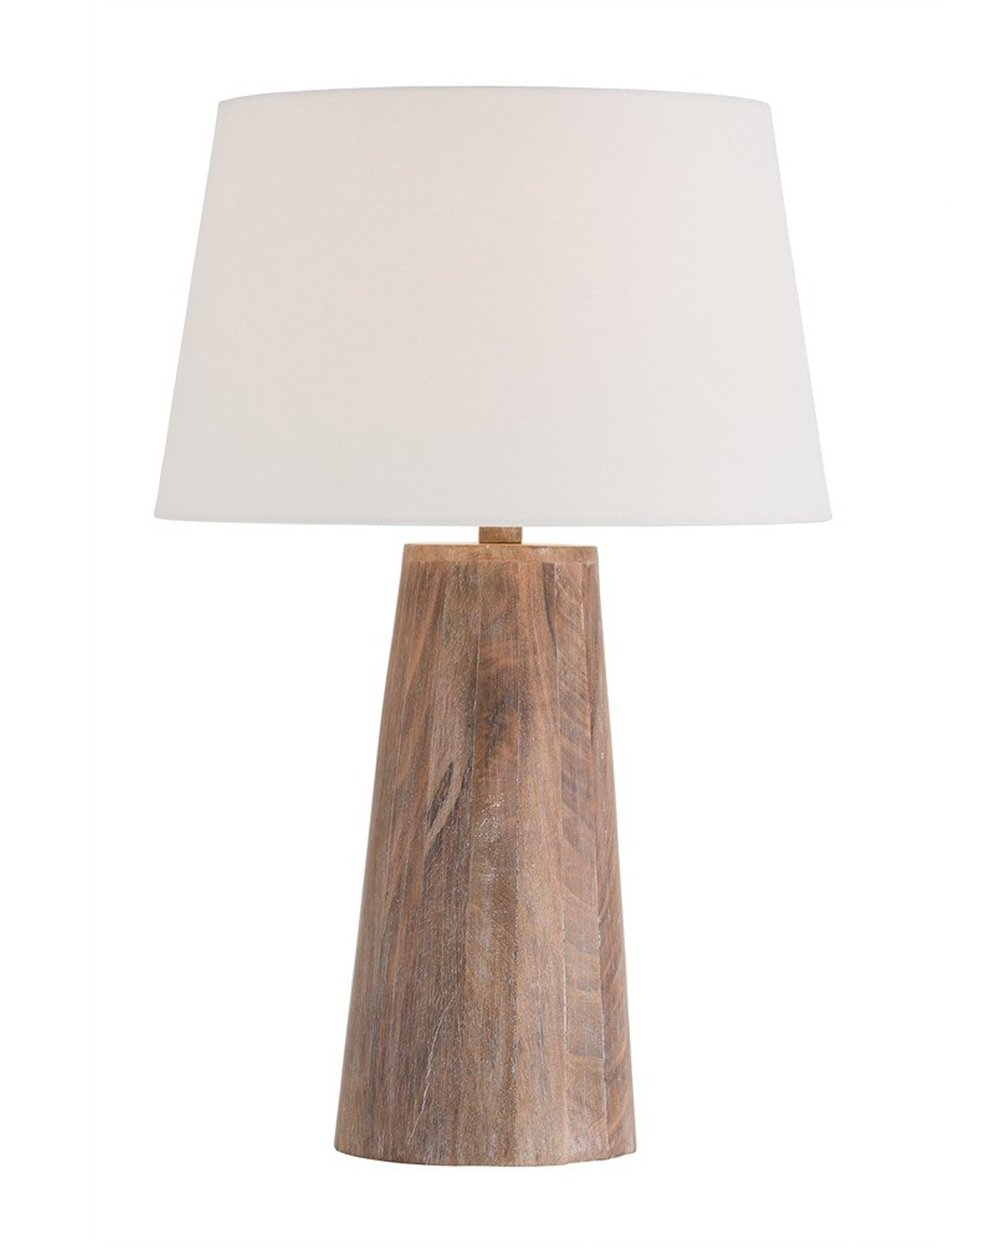 Jaden_Table_Lamp_1.jpg